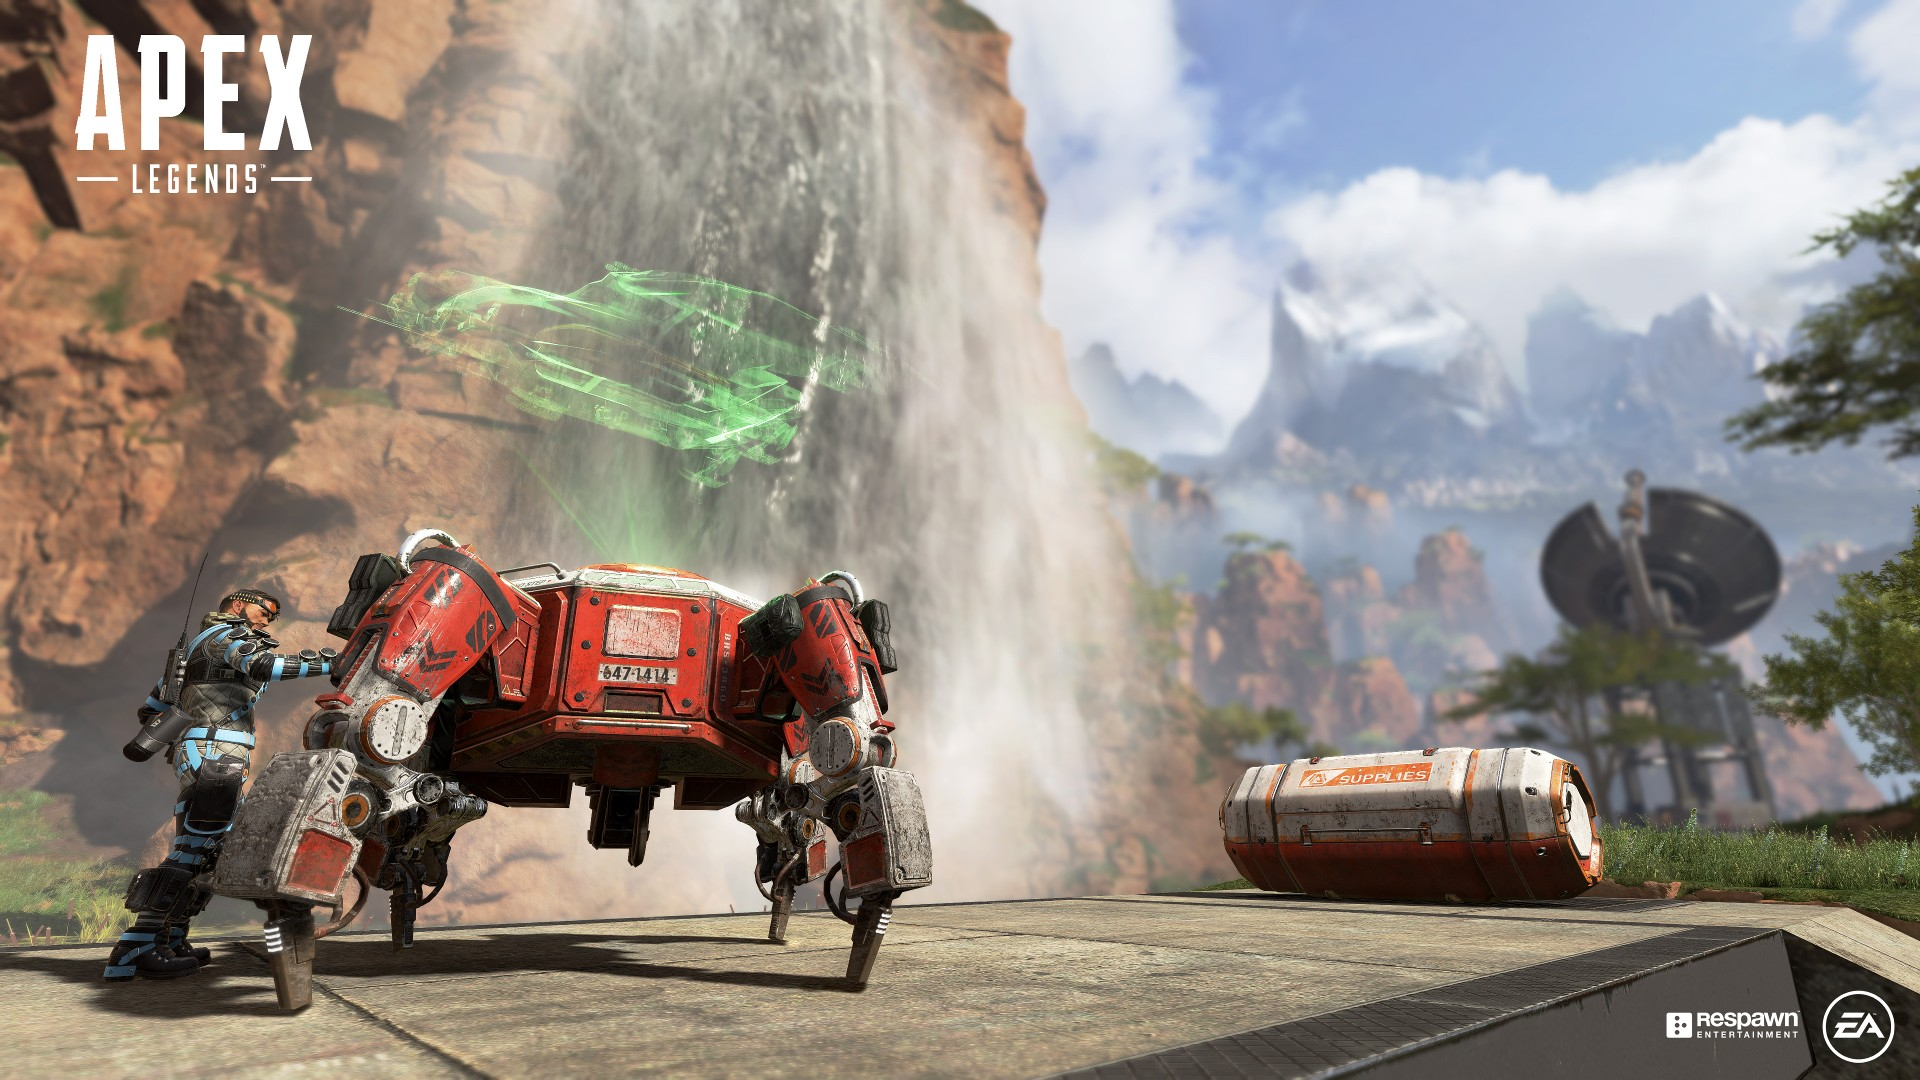 Apex Legends Balance Update released by Respawn with Patch Notes